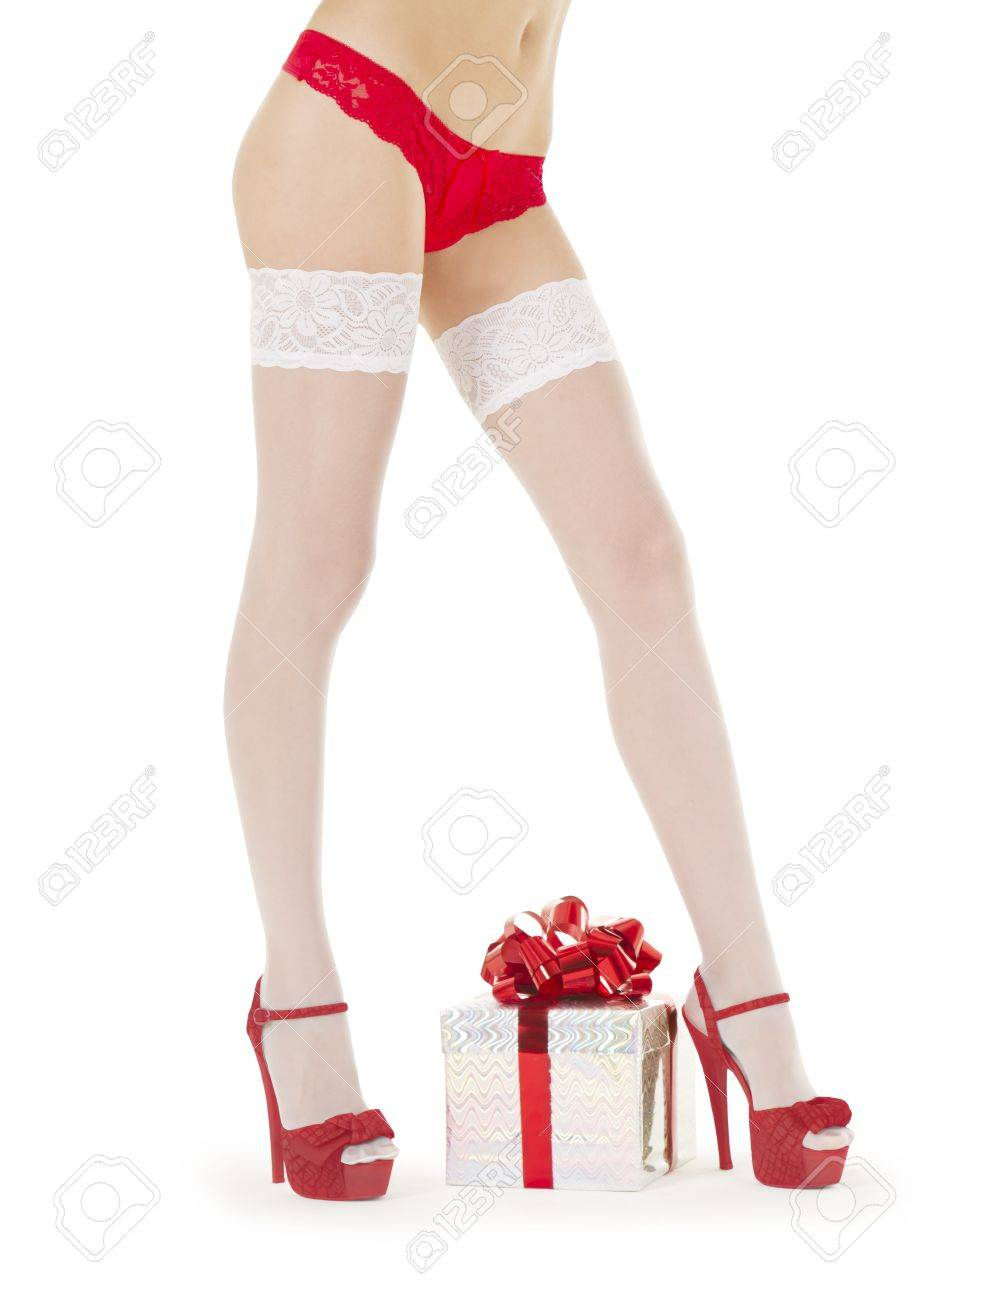 sexy female legs in white stockings with Christmas gift Stock Photo - 10103255